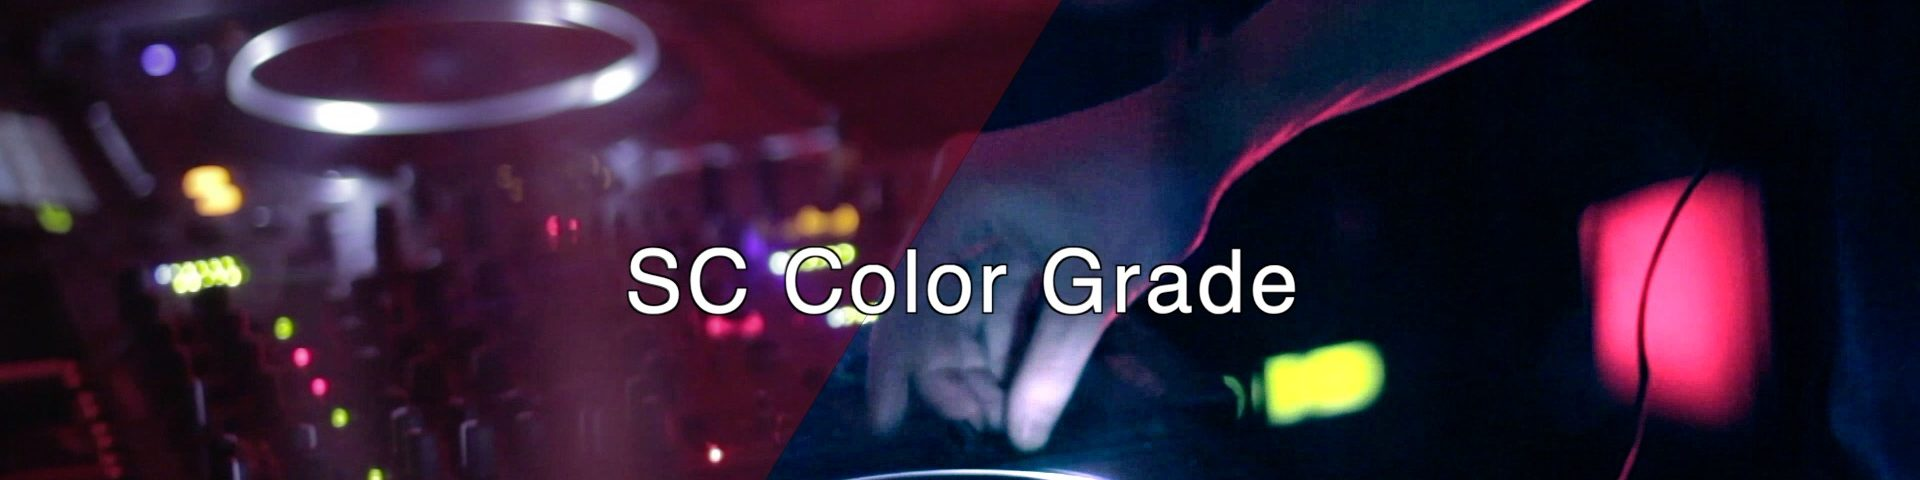 SC Color Grade effect can be used for white balance, grading, correction, clarity, and sharpness.